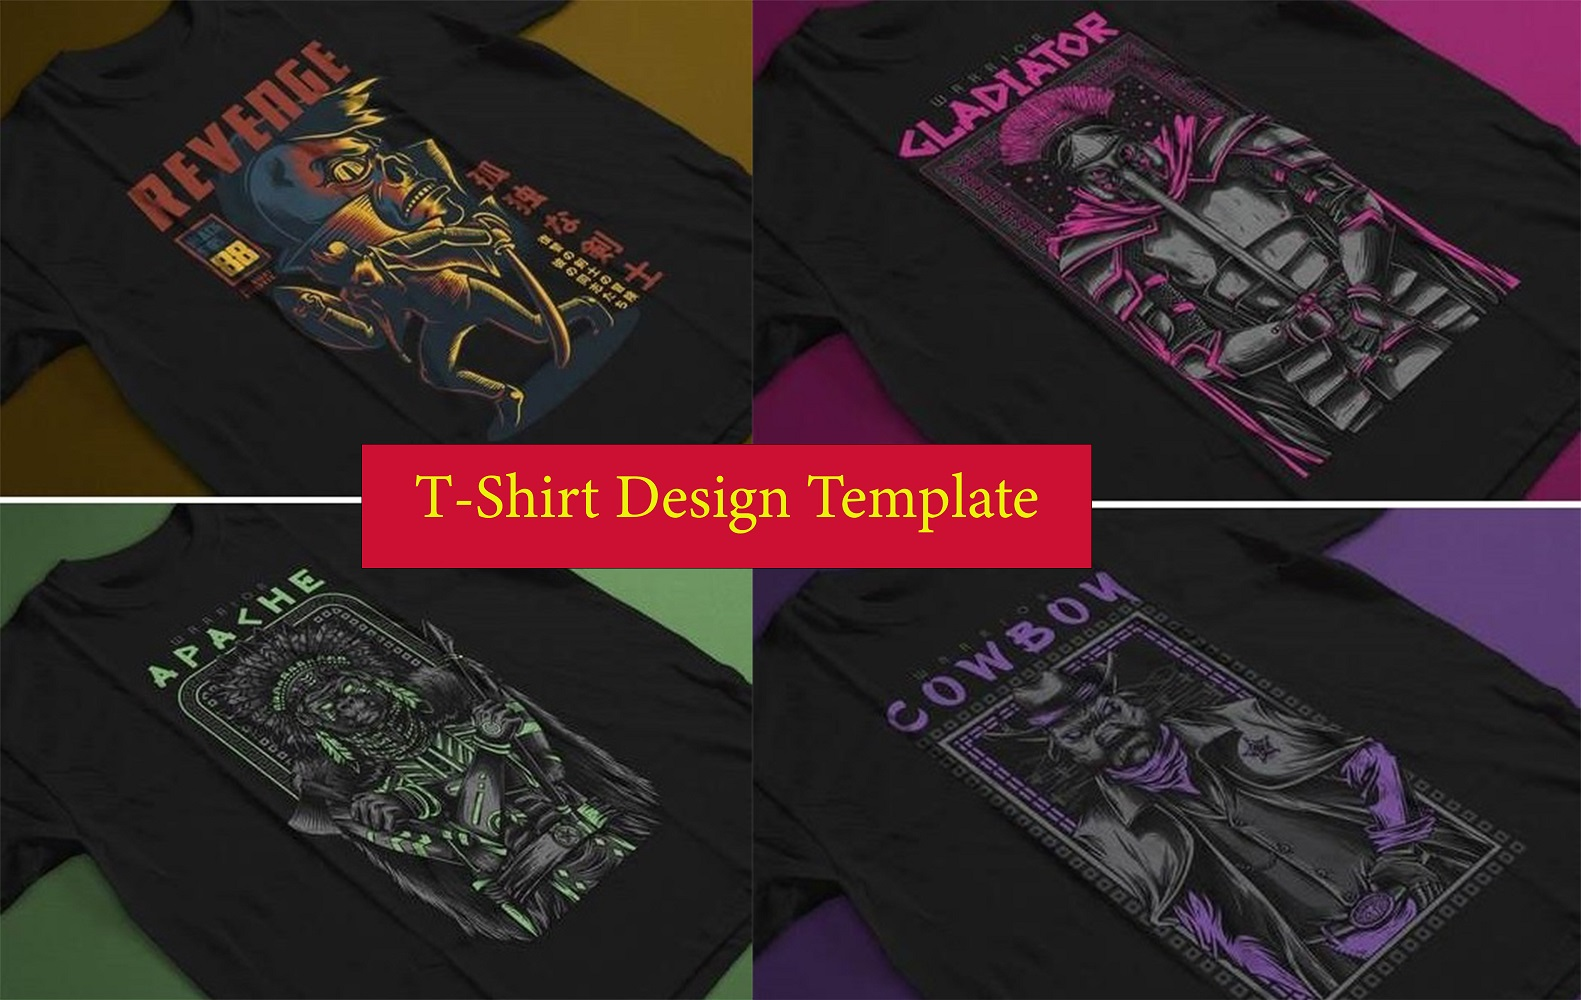 design template t shirt for your business